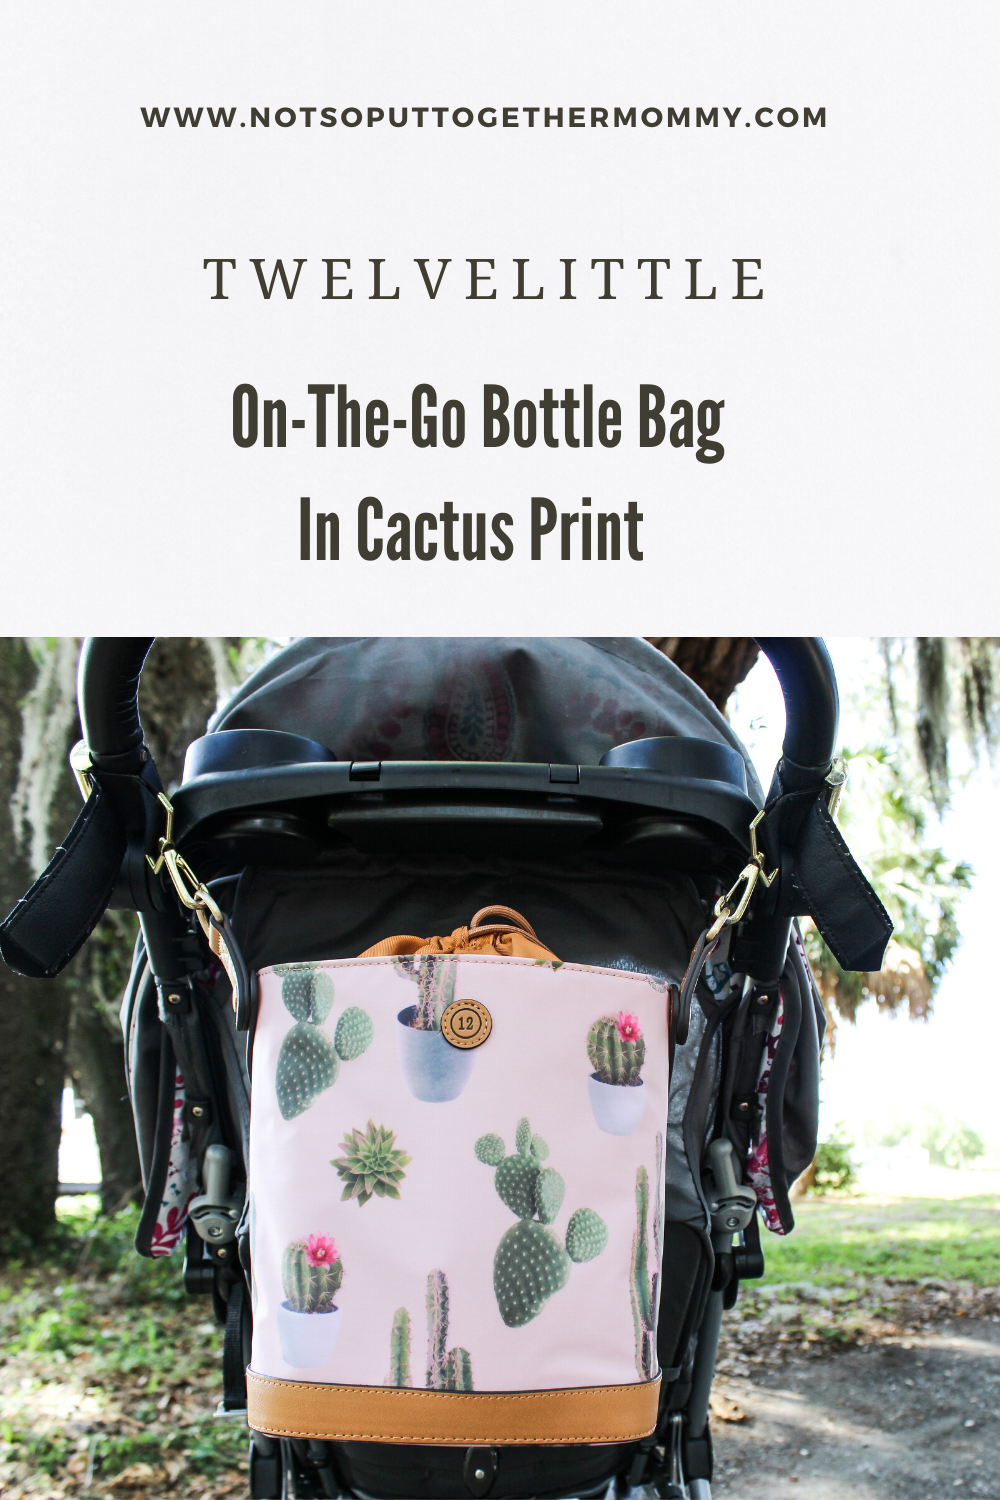 Twelvelittle Bottle Bag